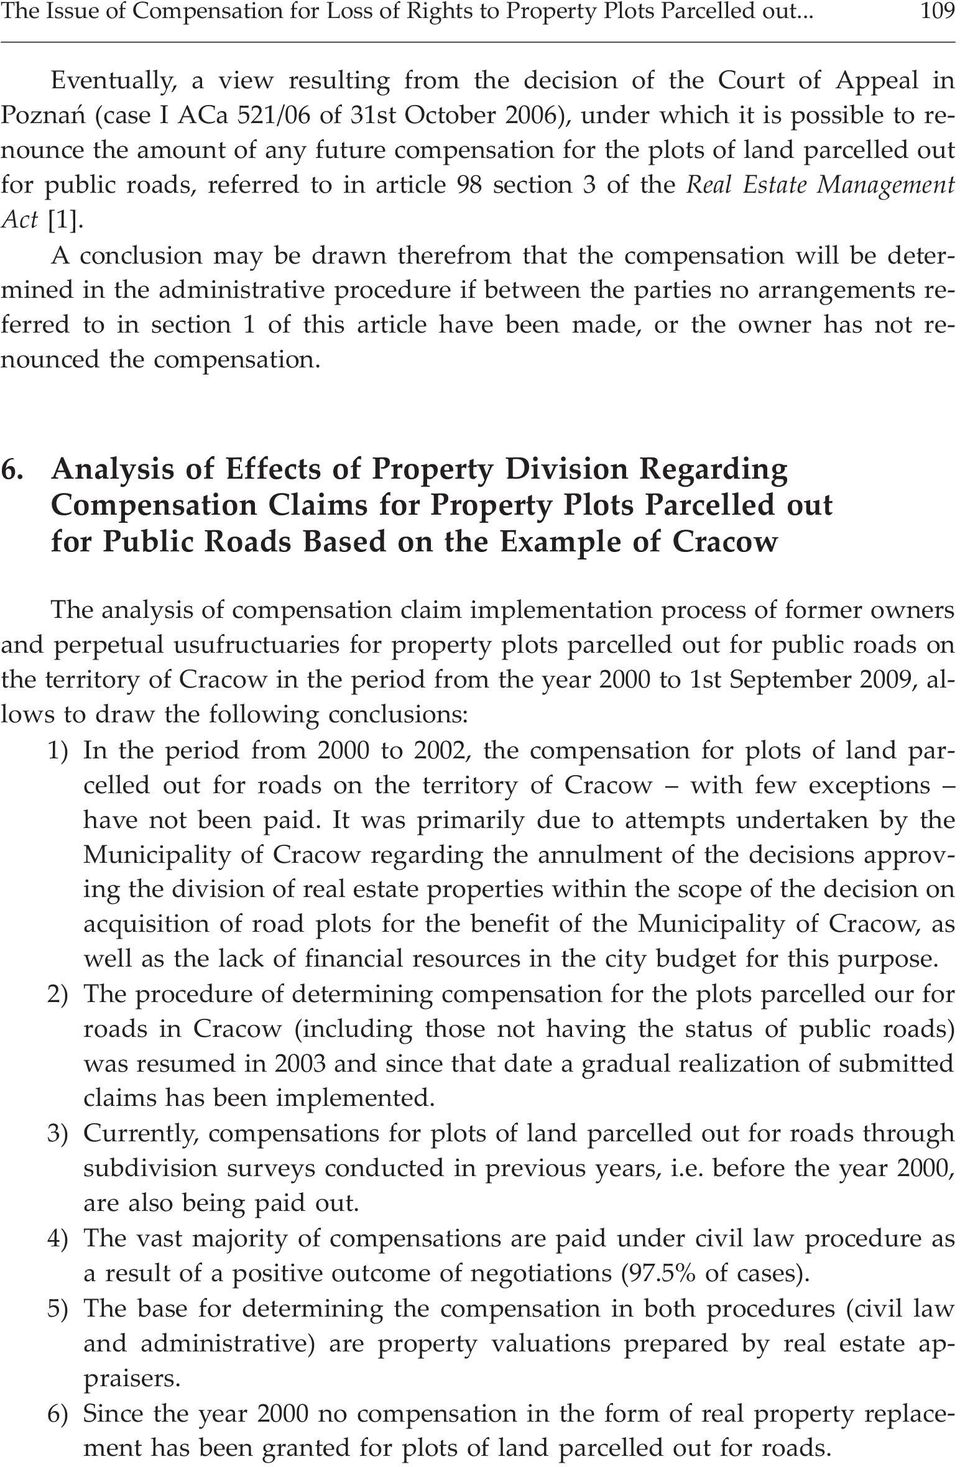 compensation for the plots of land parcelled out for public roads, referred to in article 98 section 3 of the Real Estate Management Act [1].